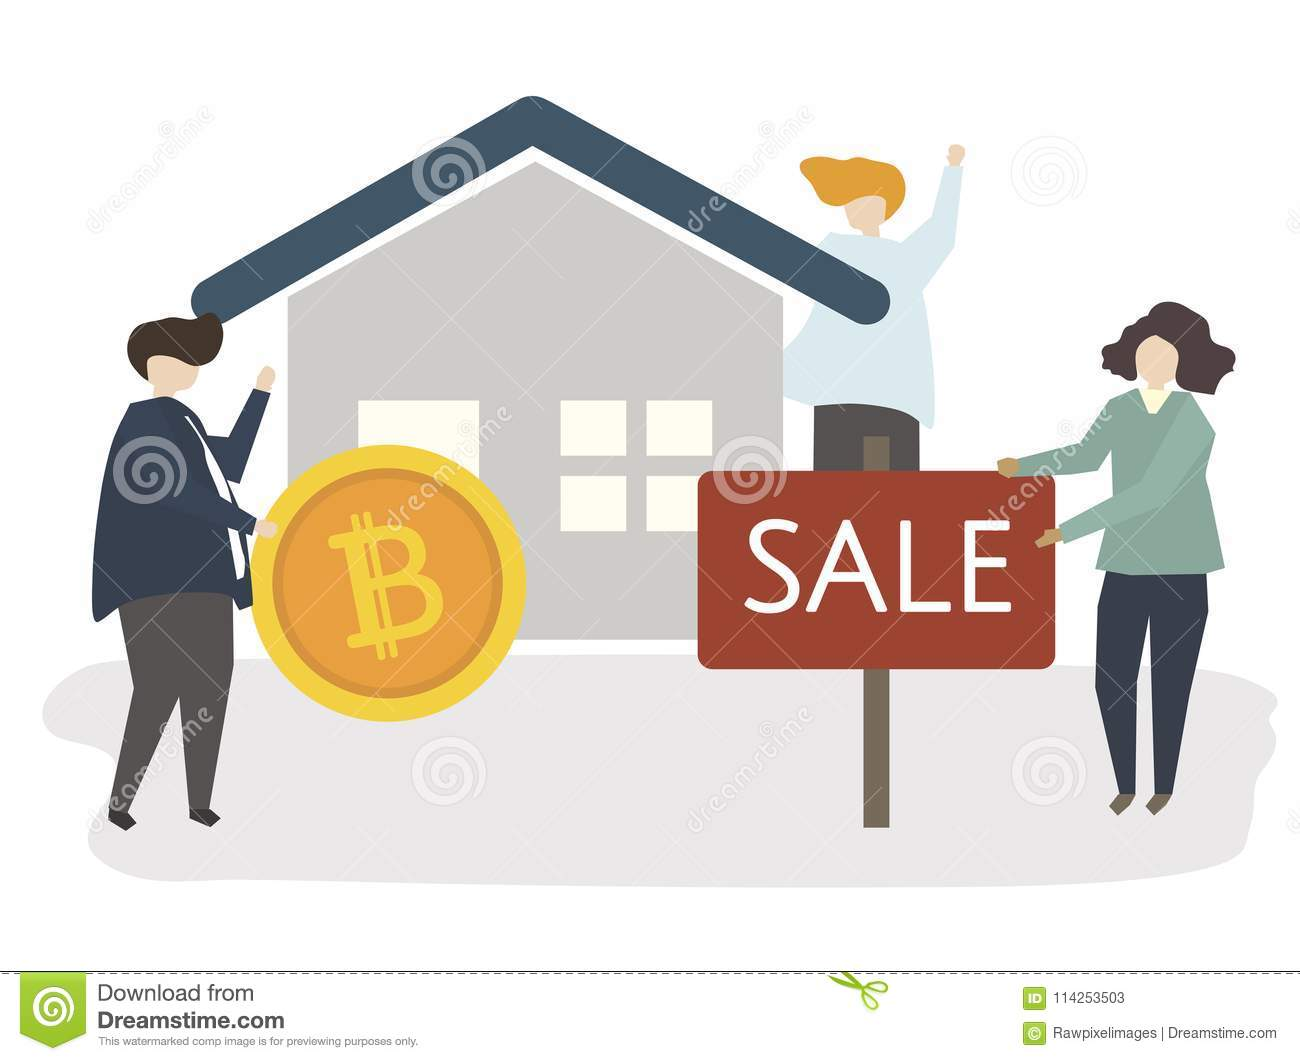 Illustration of a house on sale